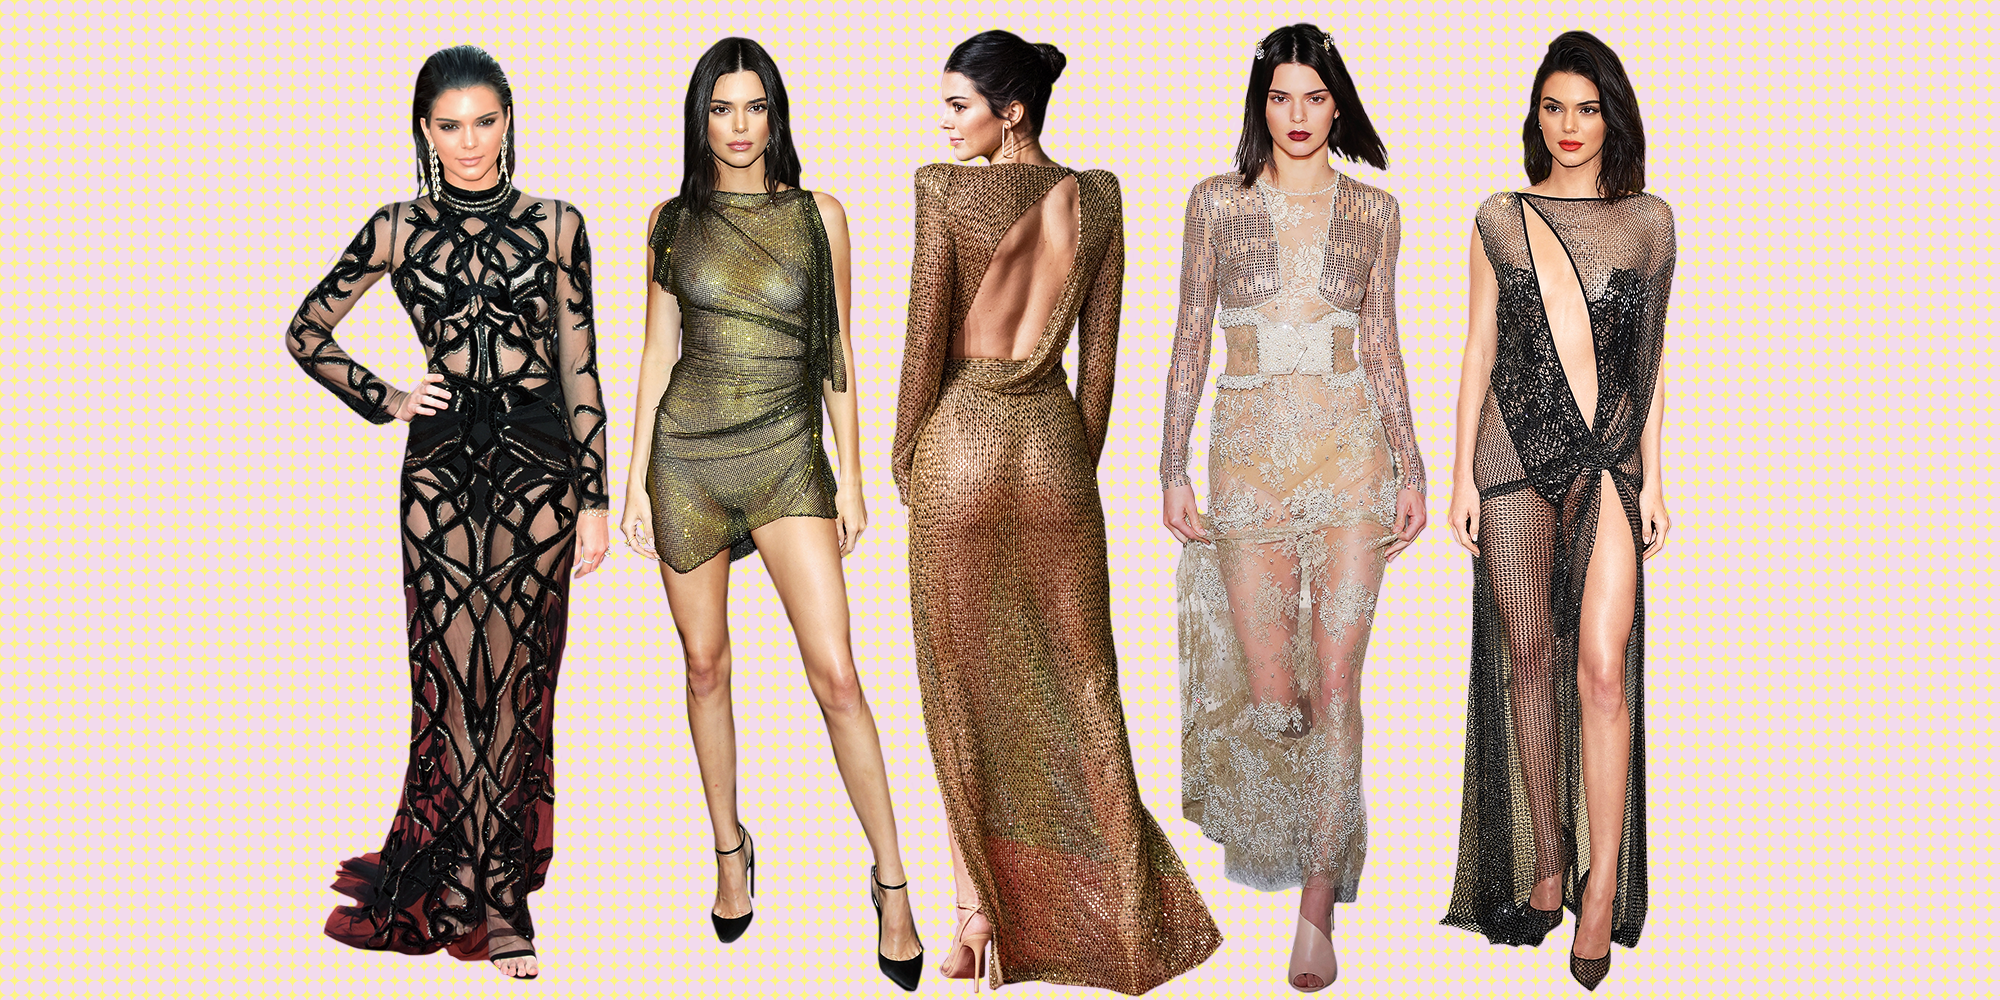 Kendall Jenner's Most Naked Outfits Will Make You Blush